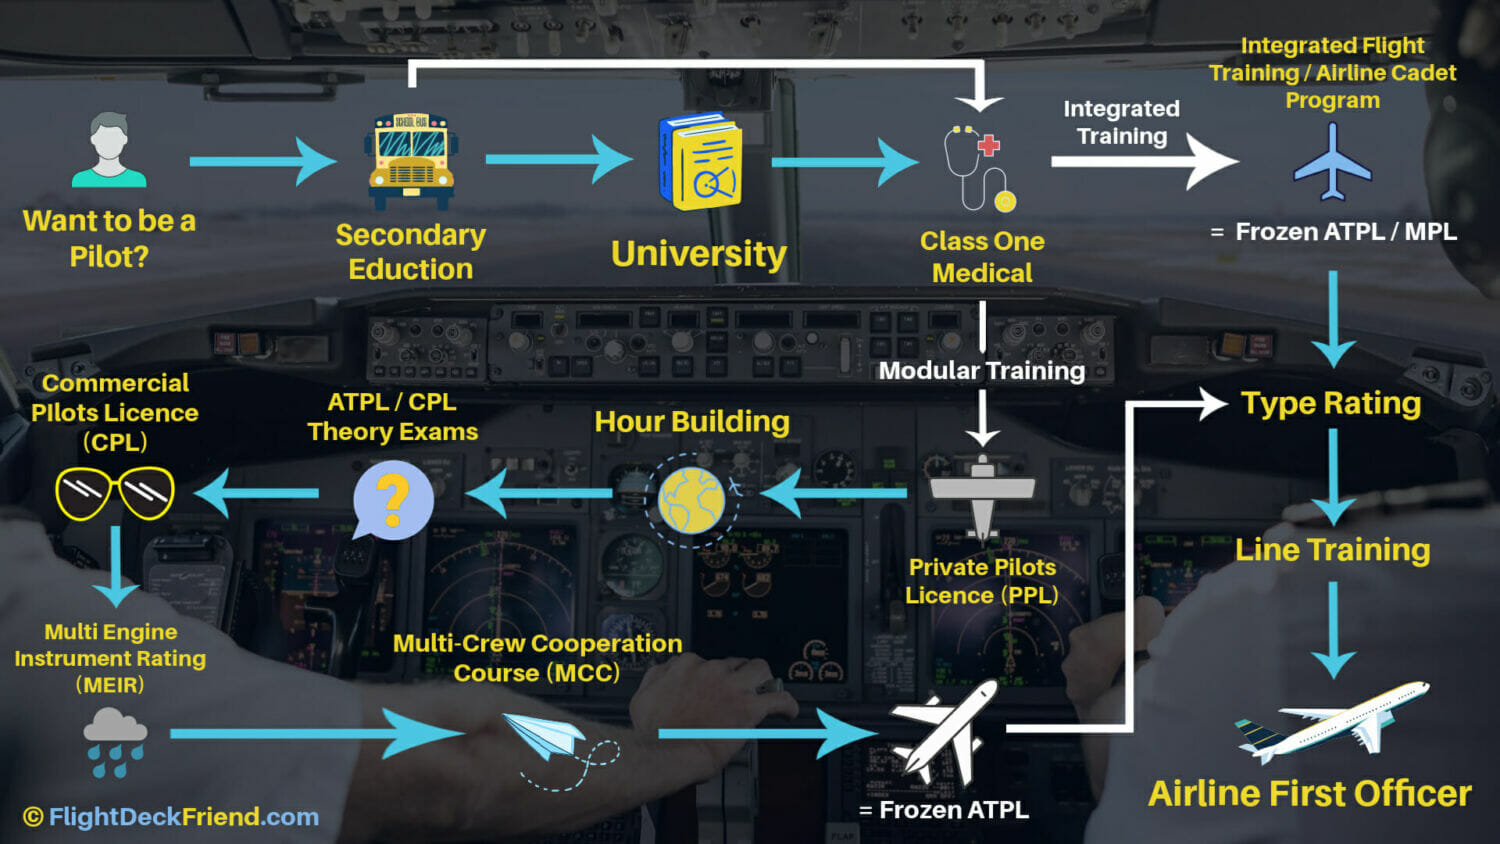 Illustration of the route to becoming an airline pilot